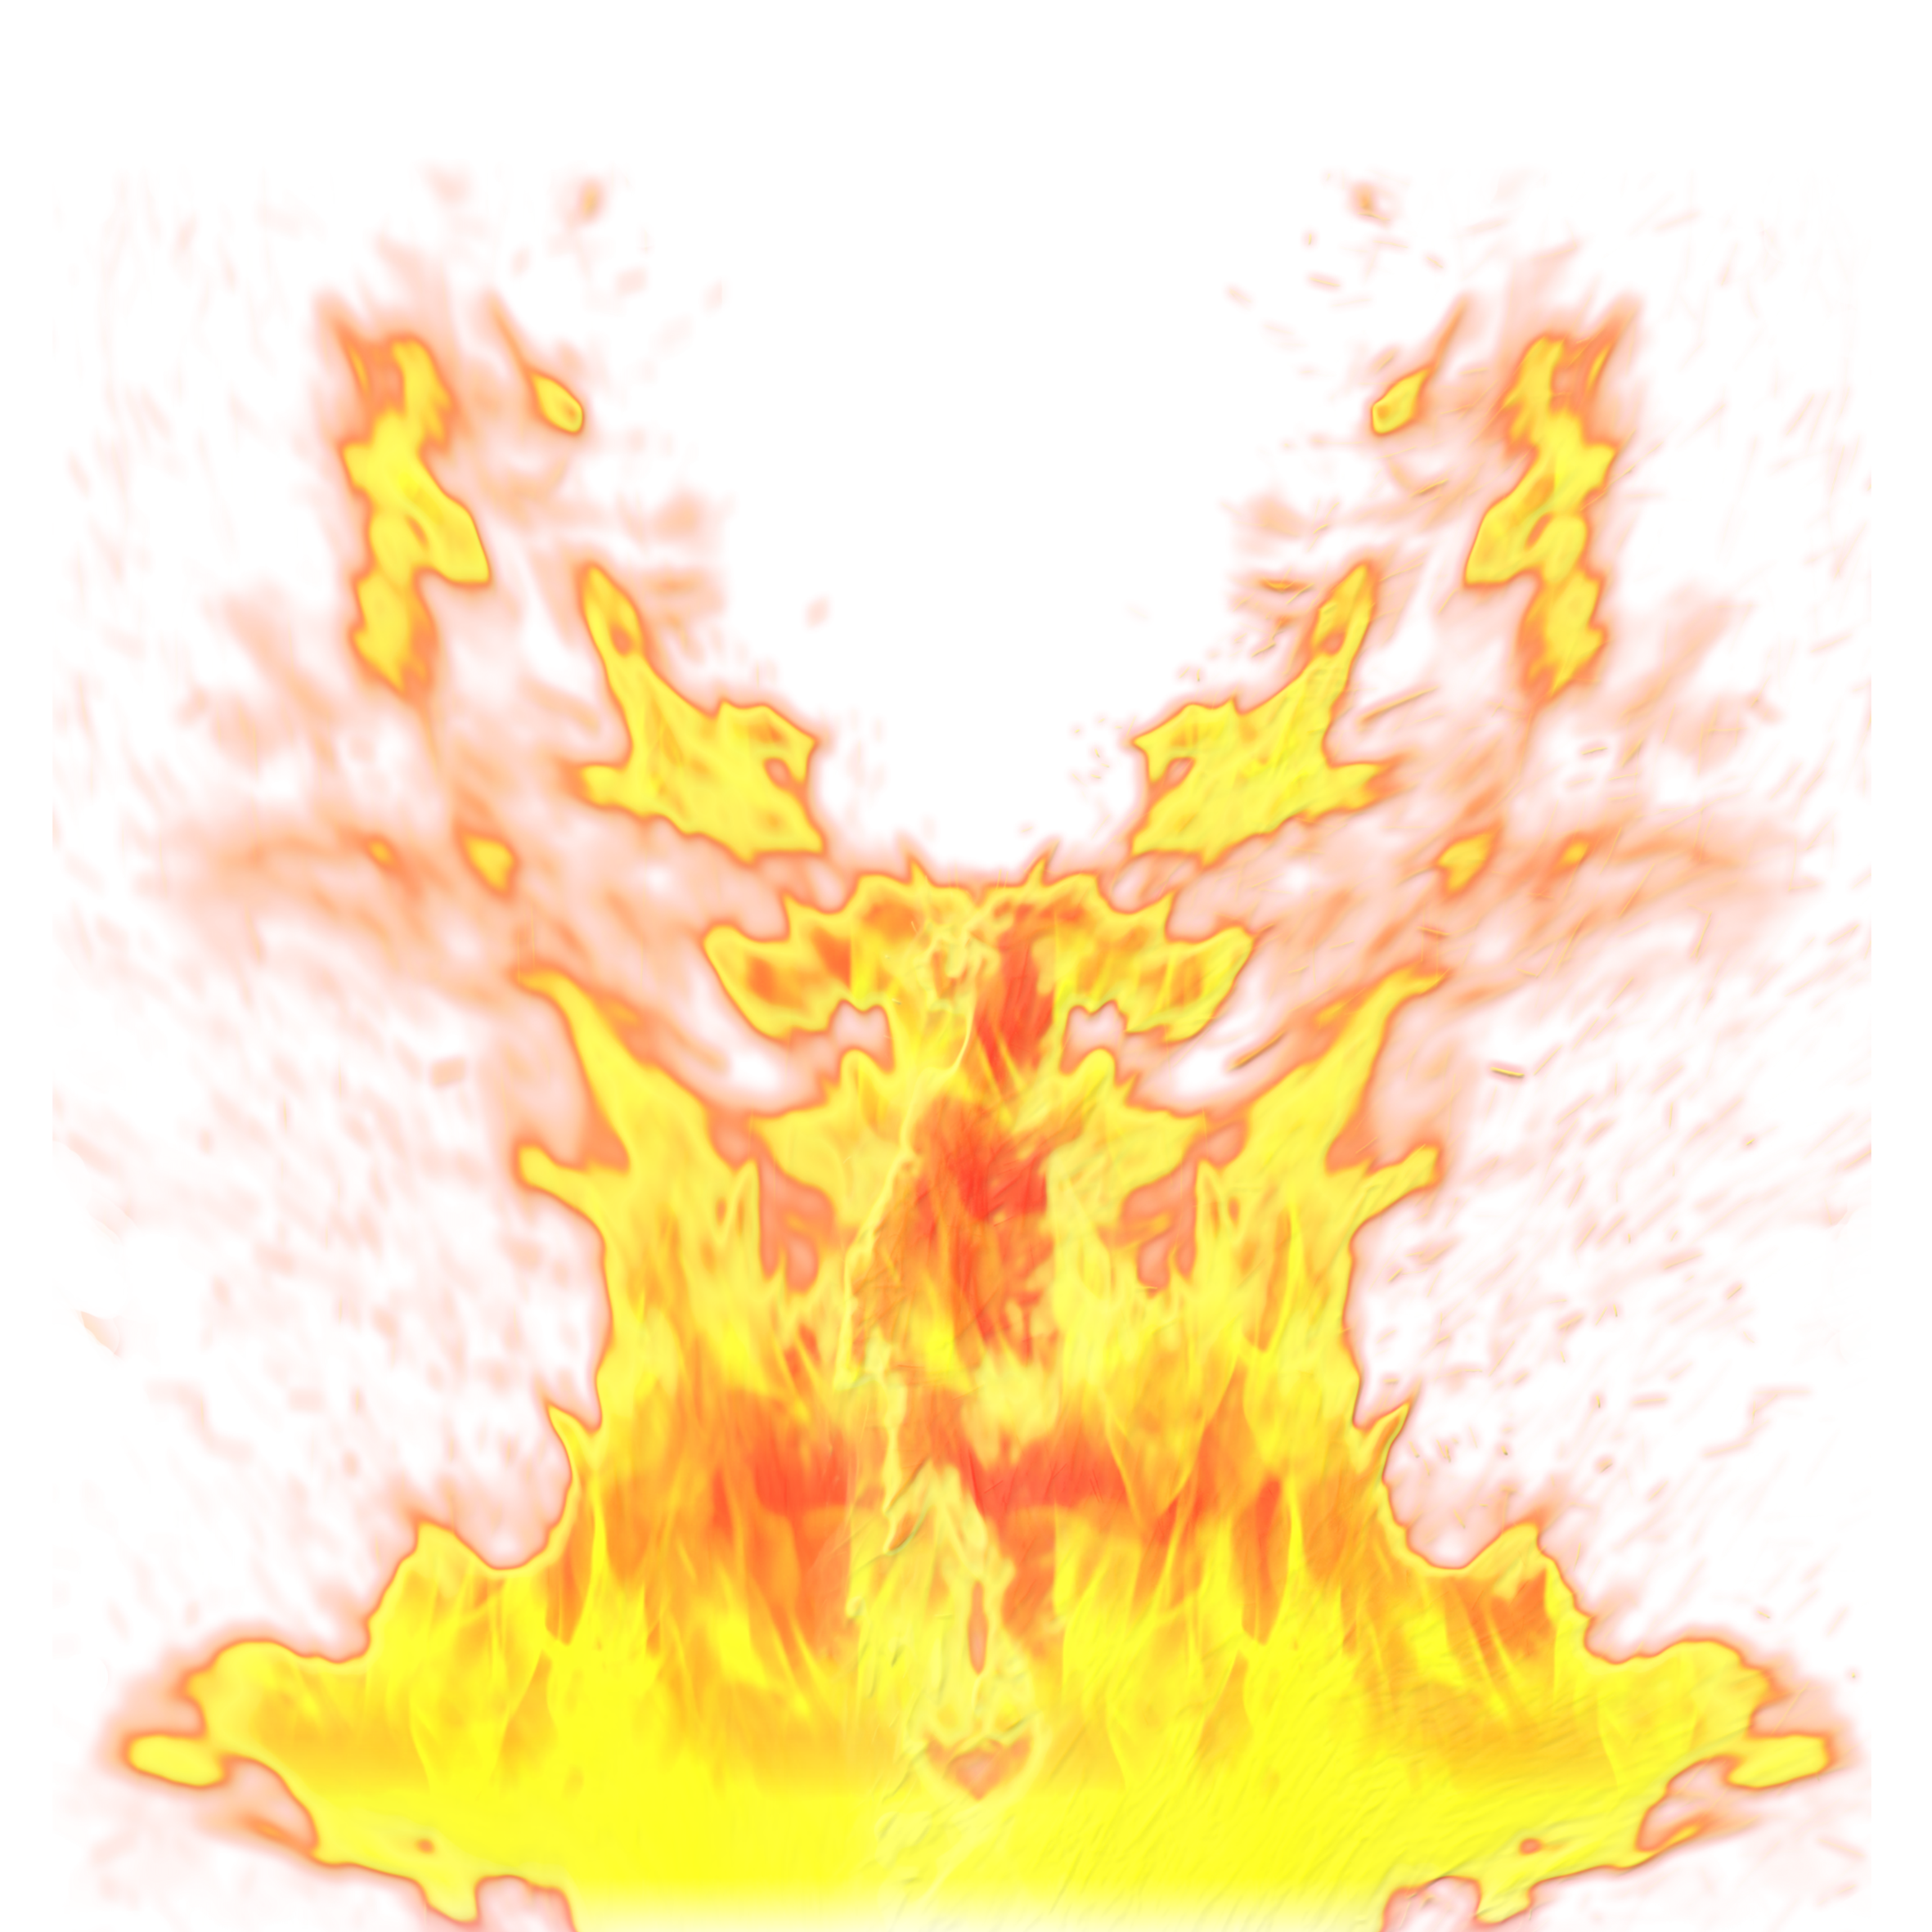 Light clipart light flame. Fire png images free